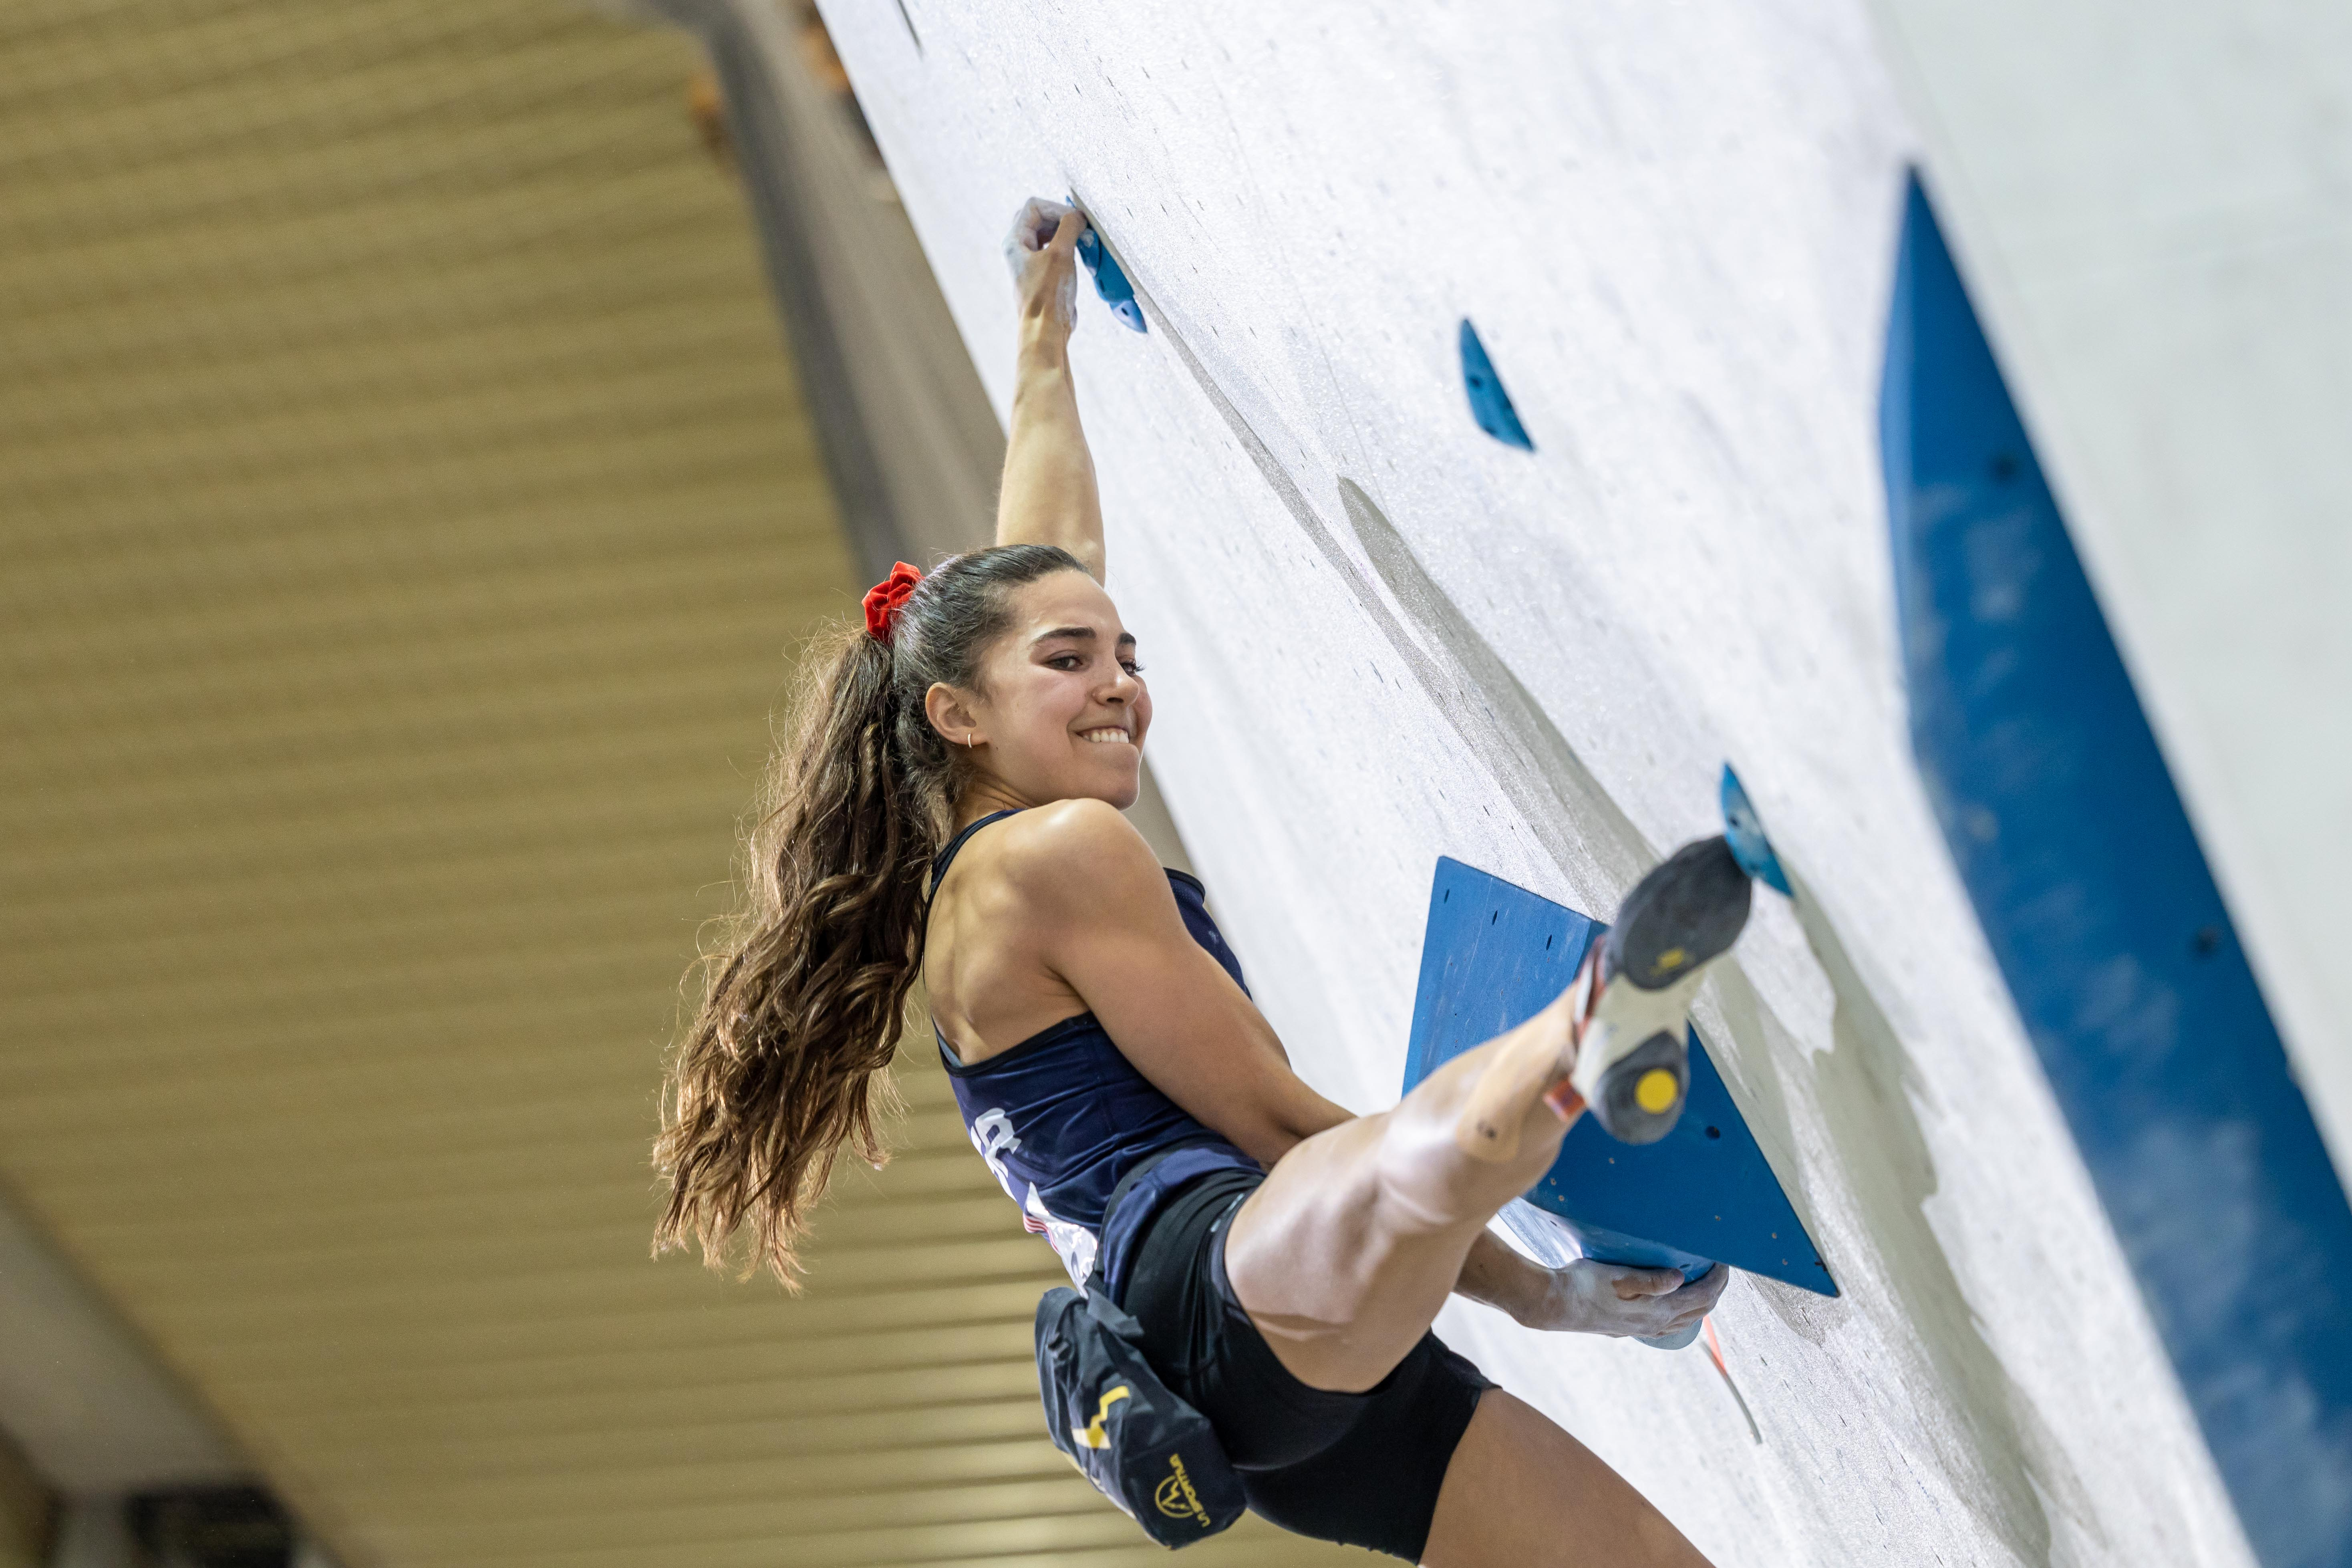 210917 IFSC News US duo takes top position at the end of the womens Boulder qualification in Moscow